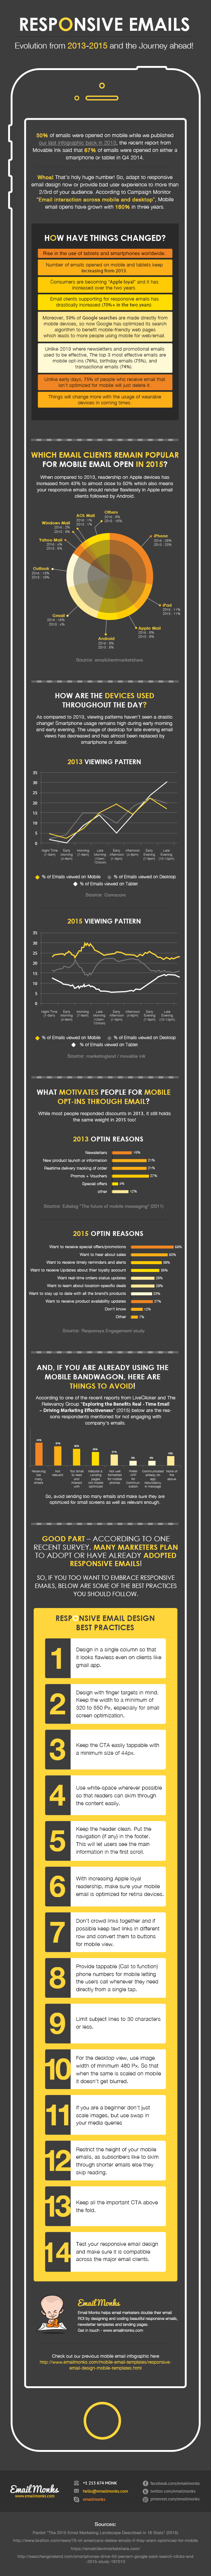 Responsive Emails Infographic - Revised